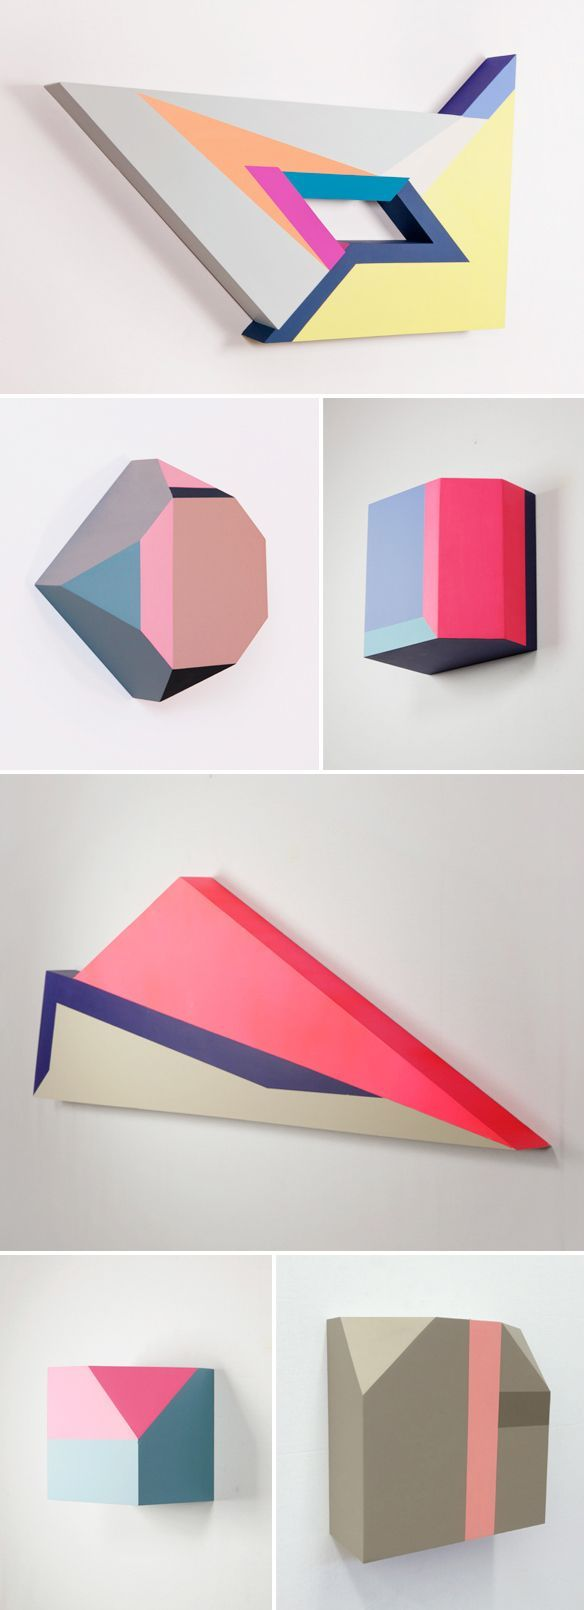 Painted wood pieces of New York based Korean artist Zin Helena Song - become stylish pieces of wall art.